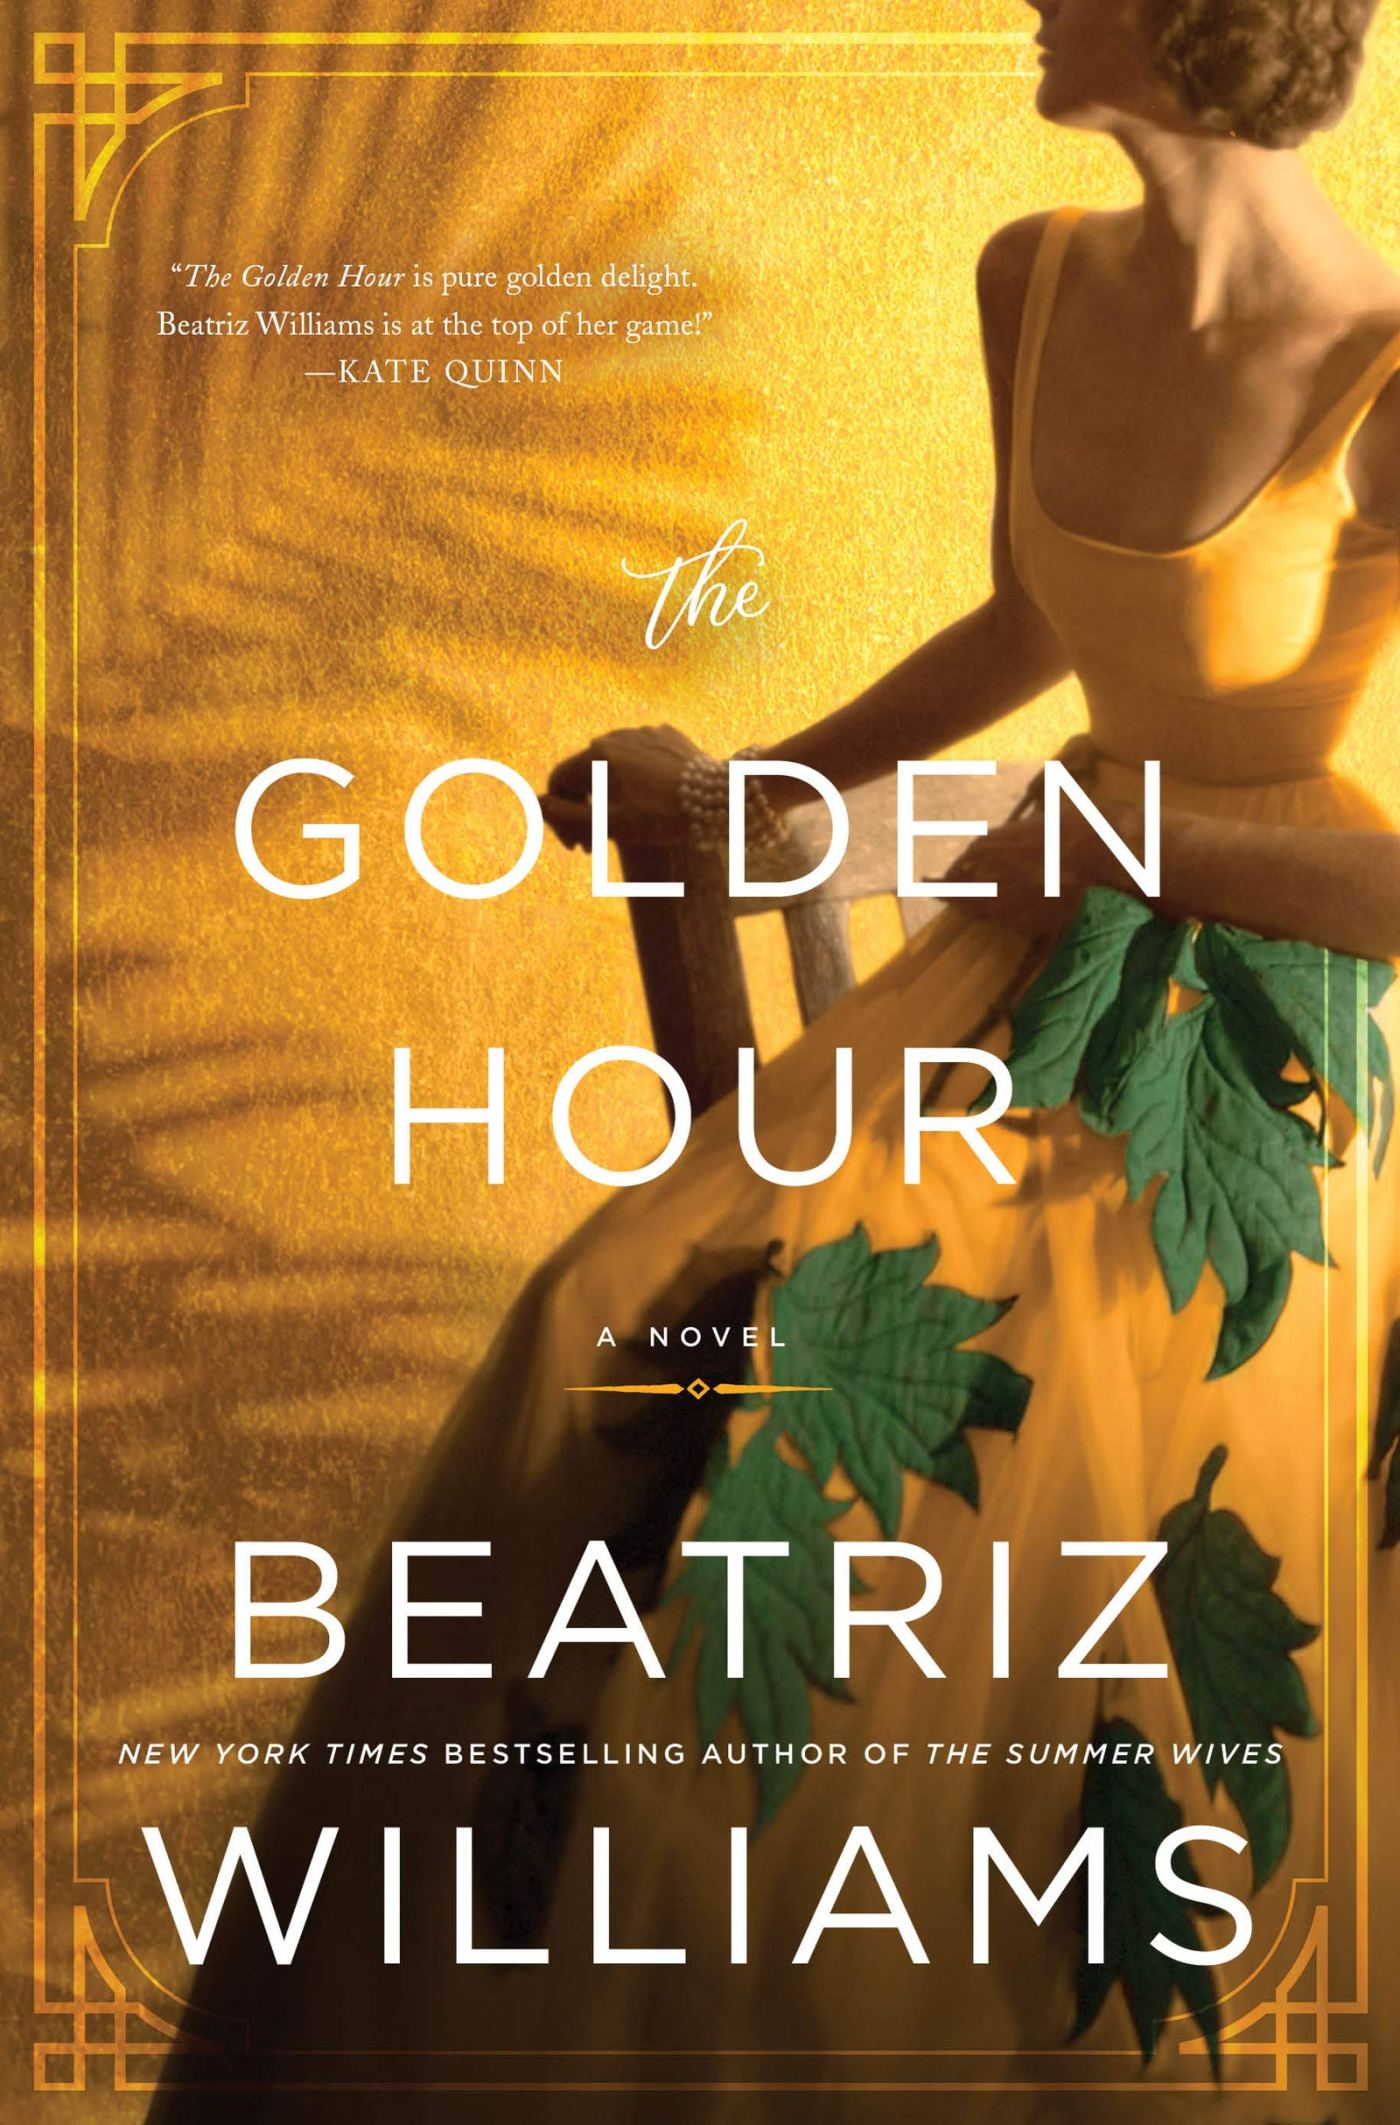 Beatriz Williams - The Golden Hour